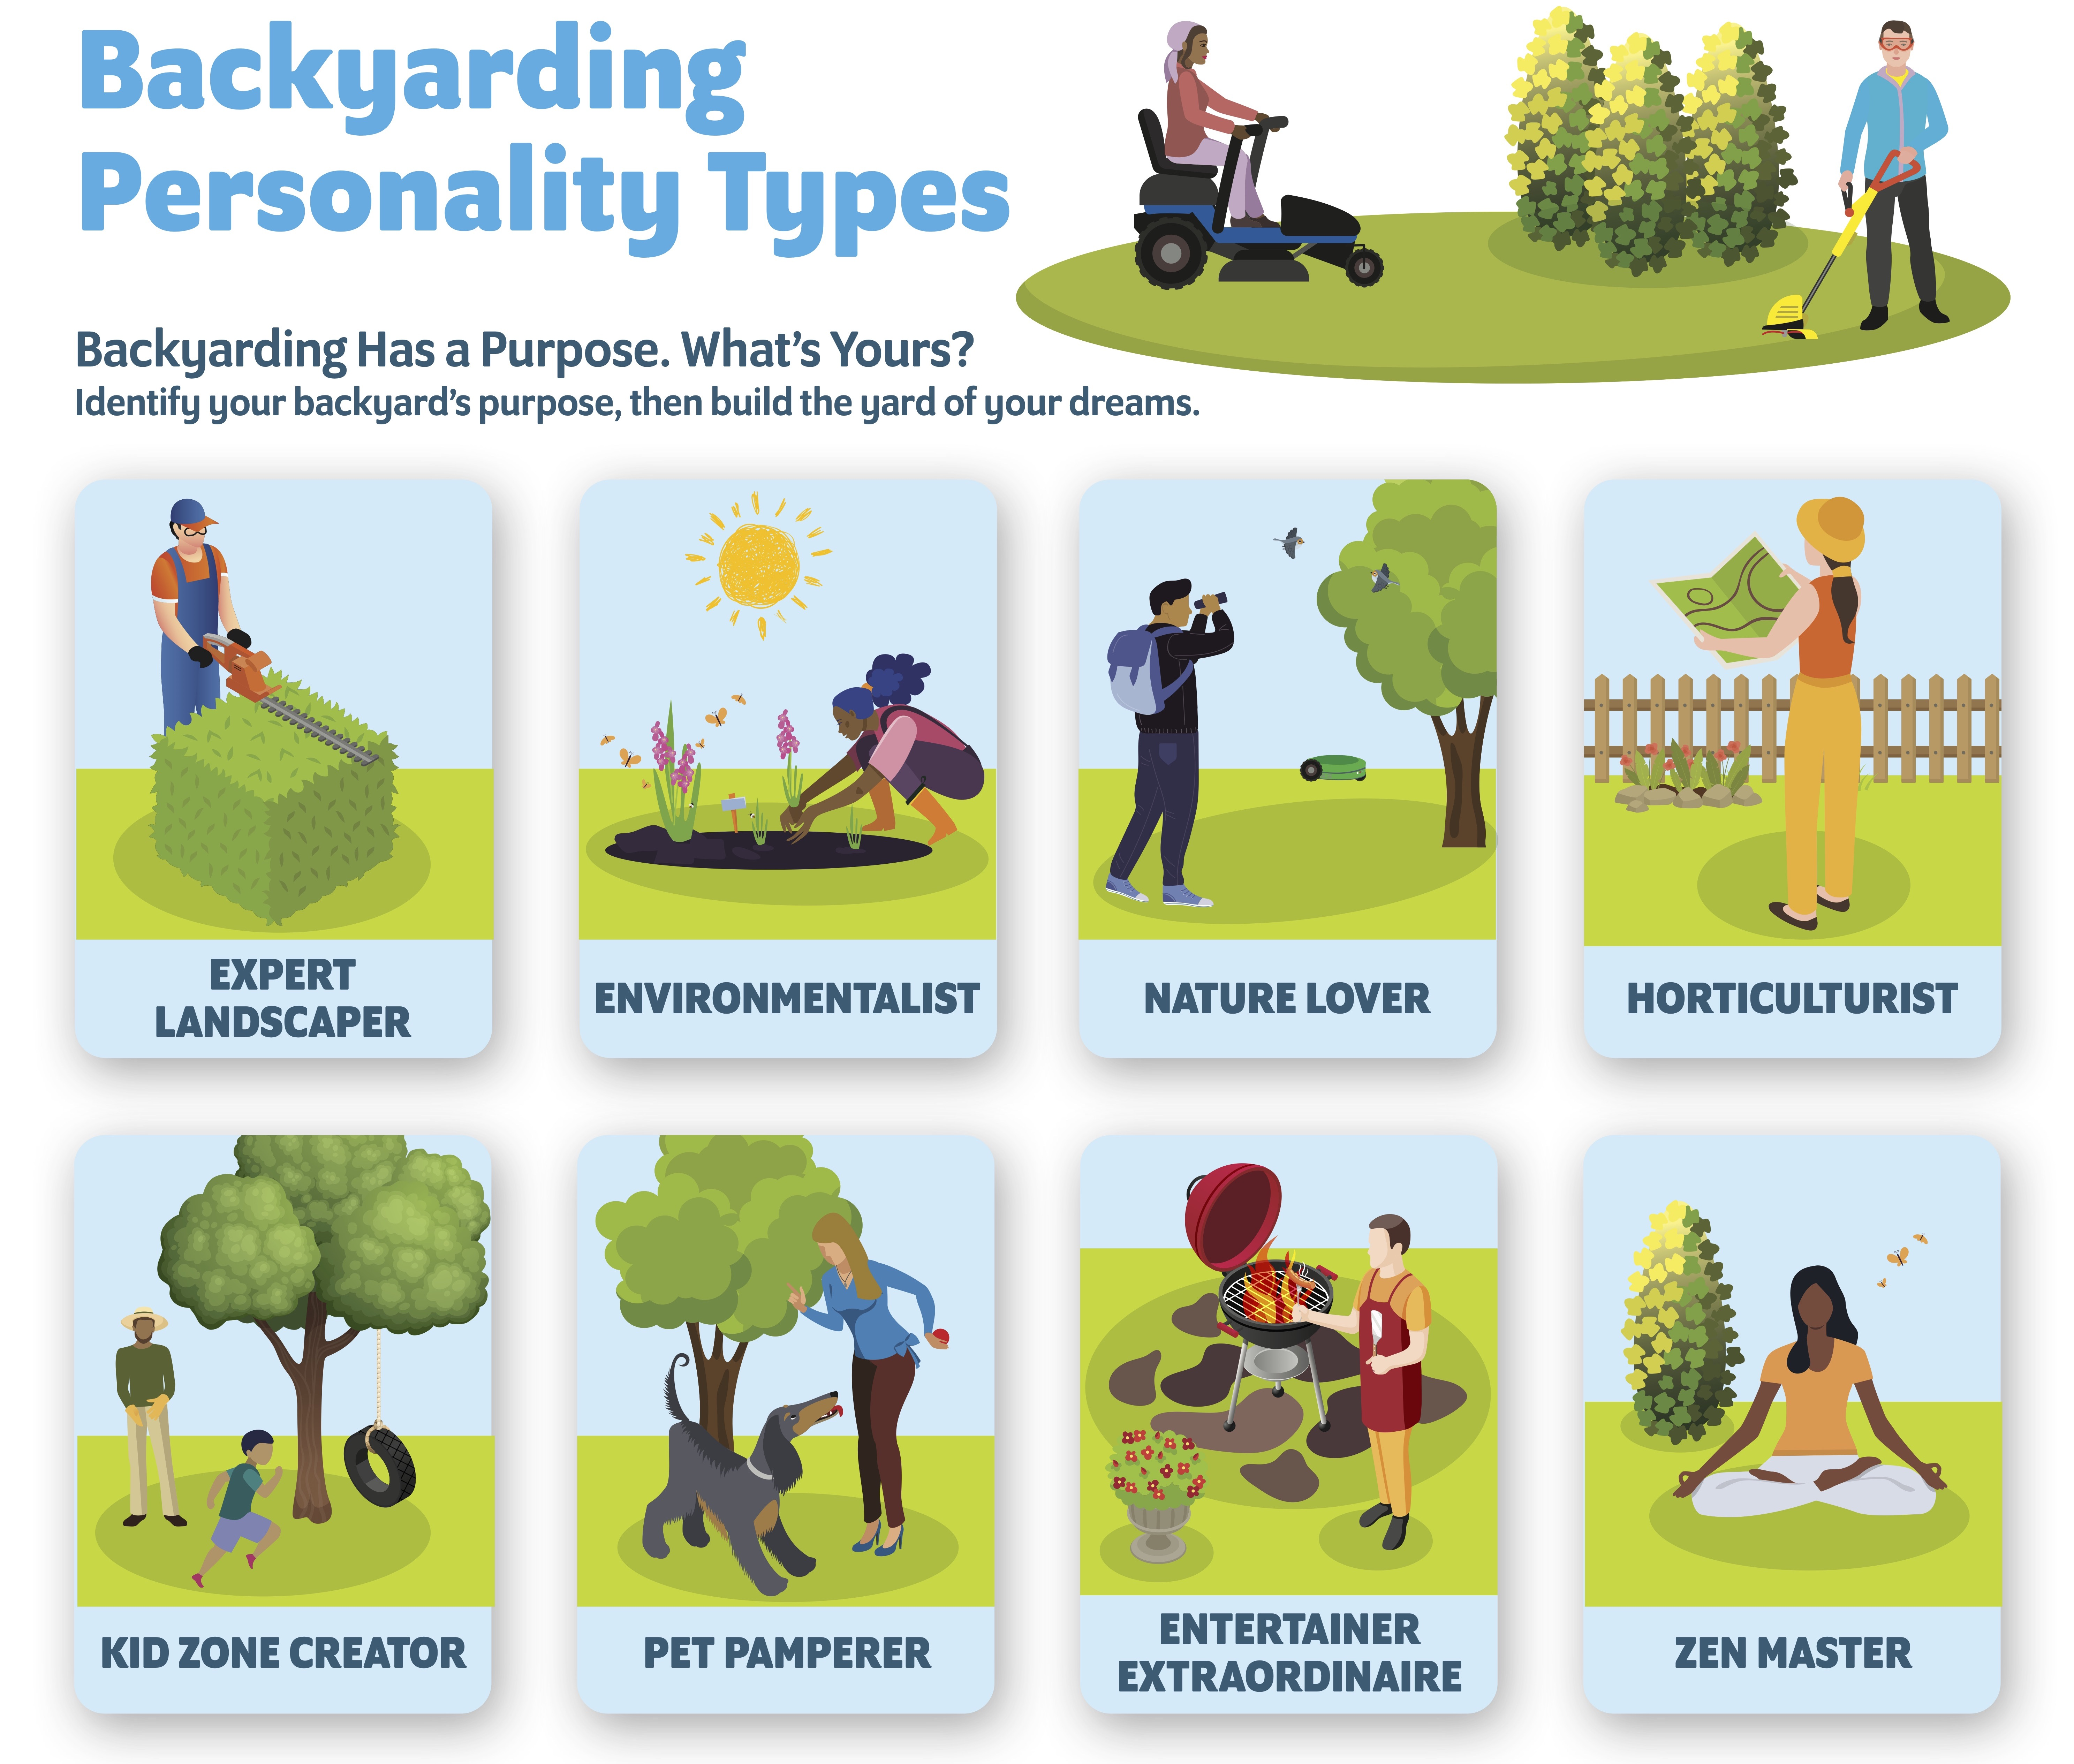 Infographic showing different back yarding personality types